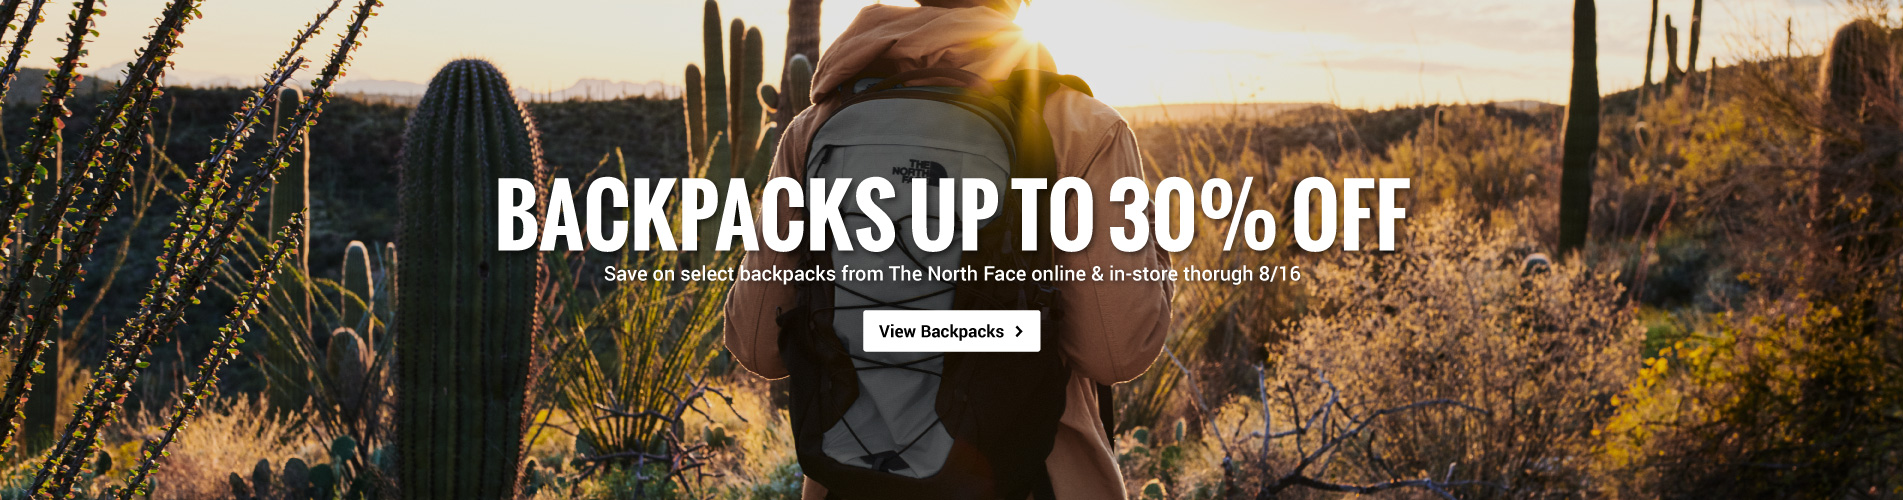 Save 30% off select backpacks from The North Face online and in-store through 8/16